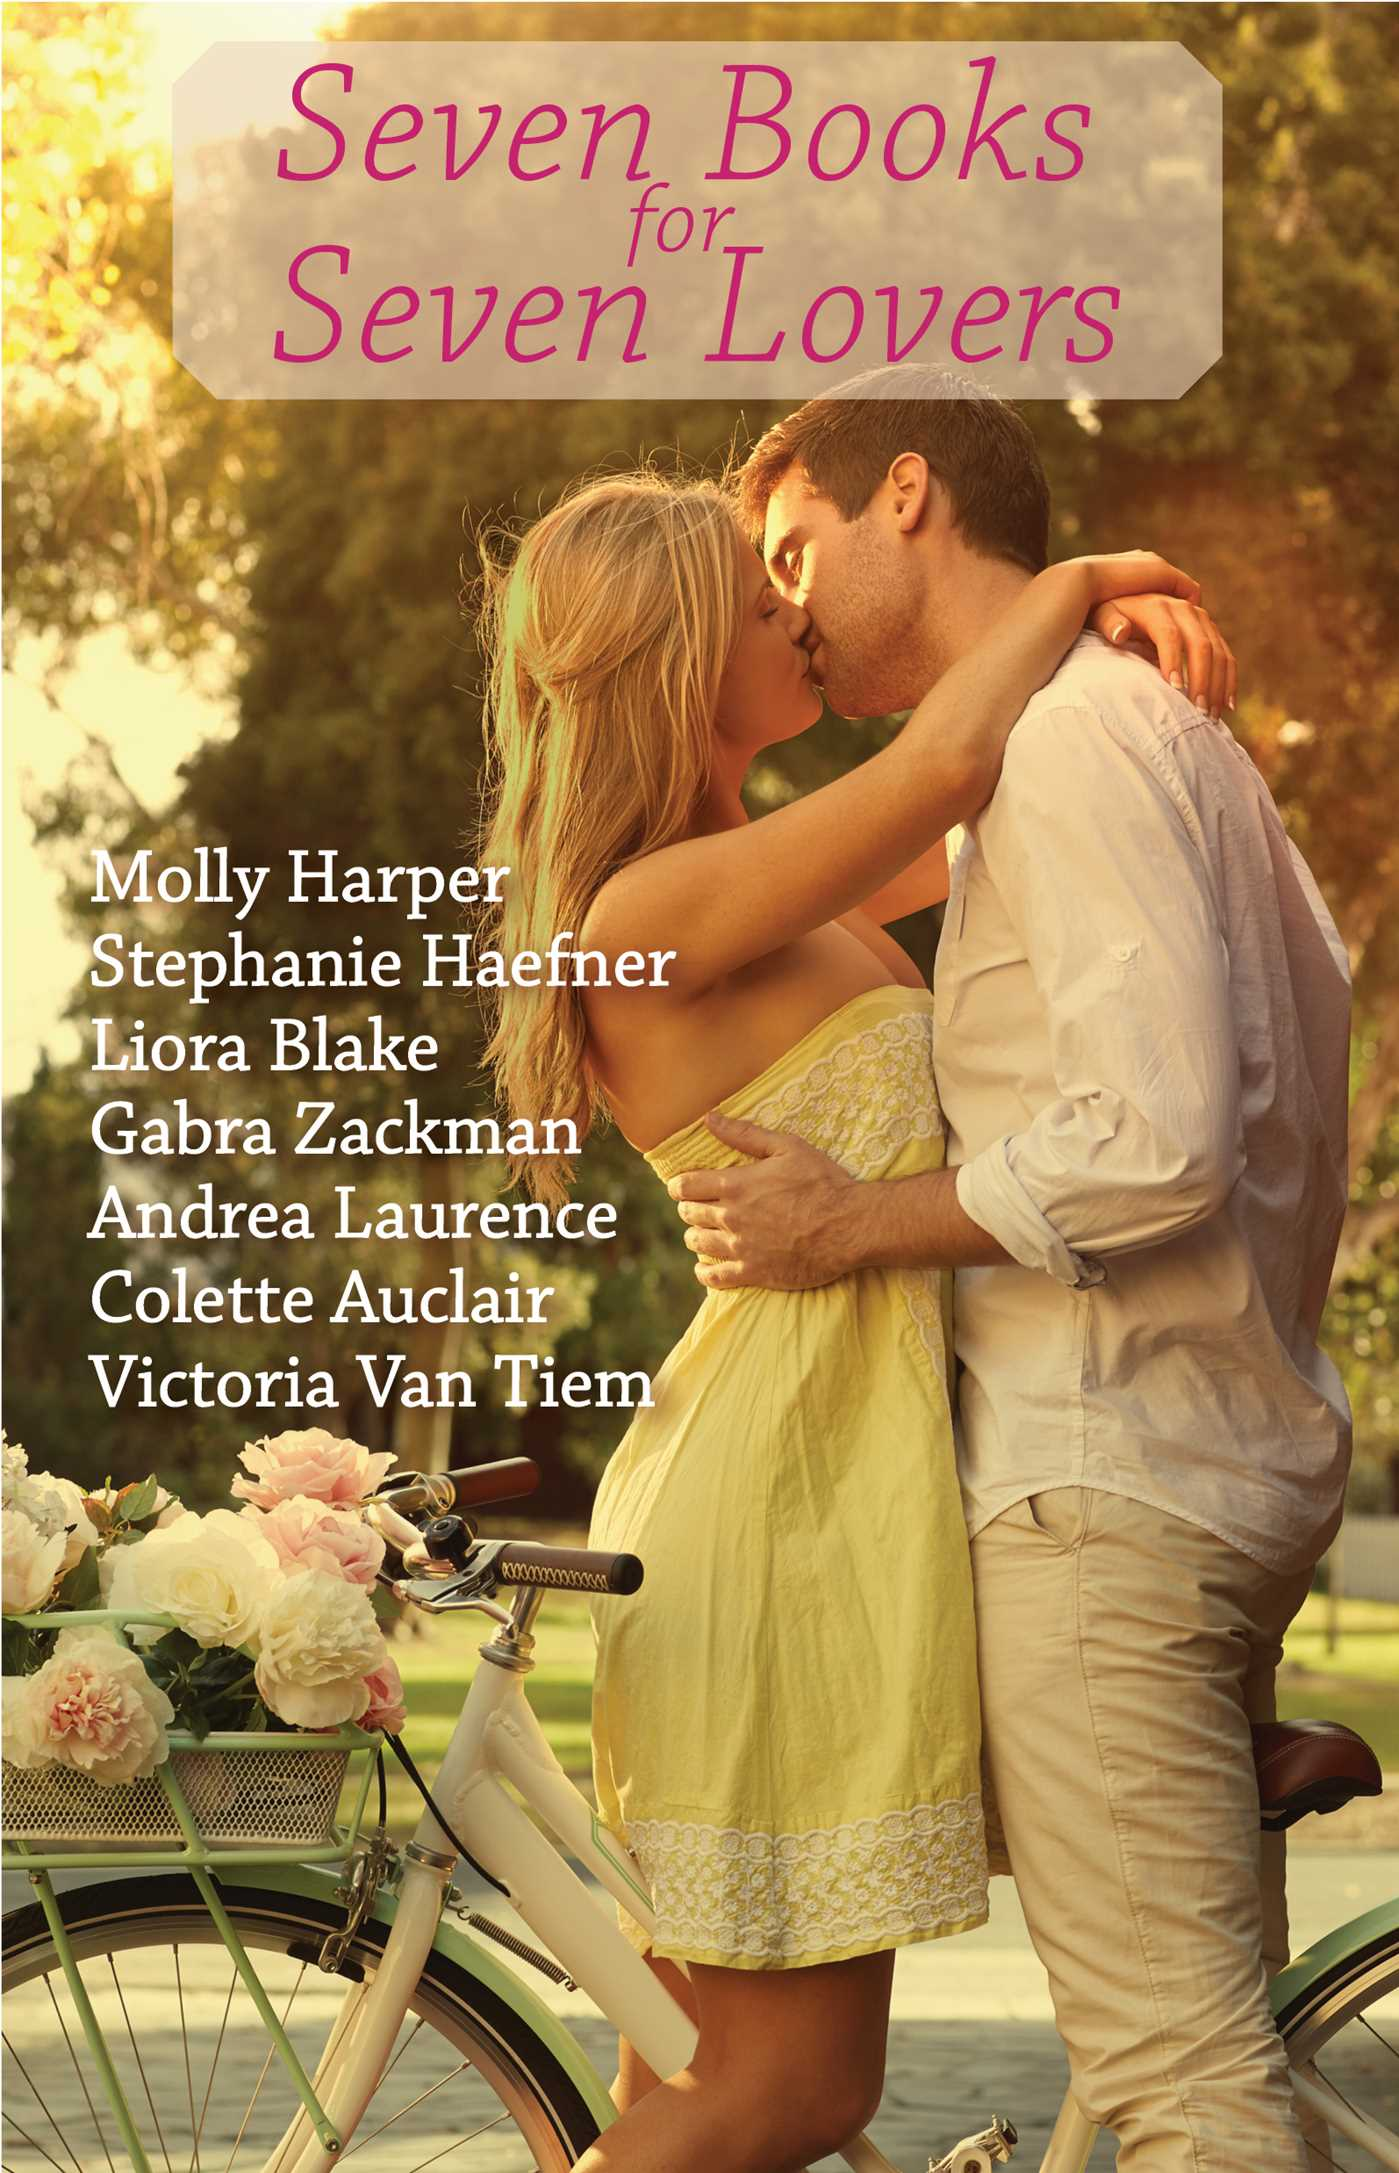 Book Cover Image (jpg): Seven Books For Seven Lovers Ebook 9781501140150